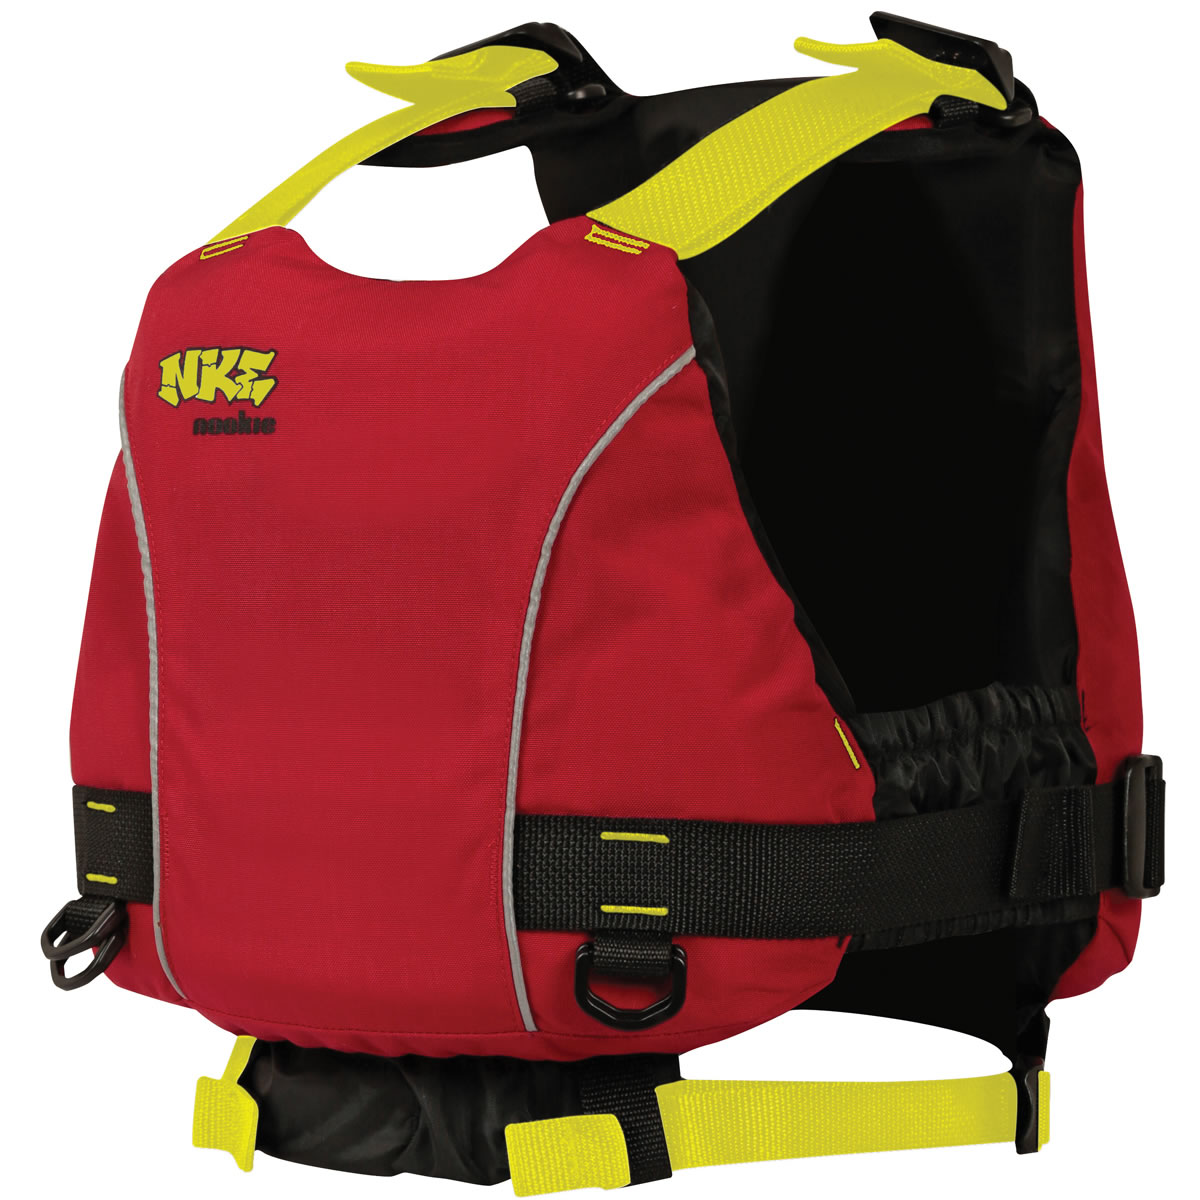 NKE Vest Centre Buoyancy Aid (Junior - Red with Yellow Webbing)